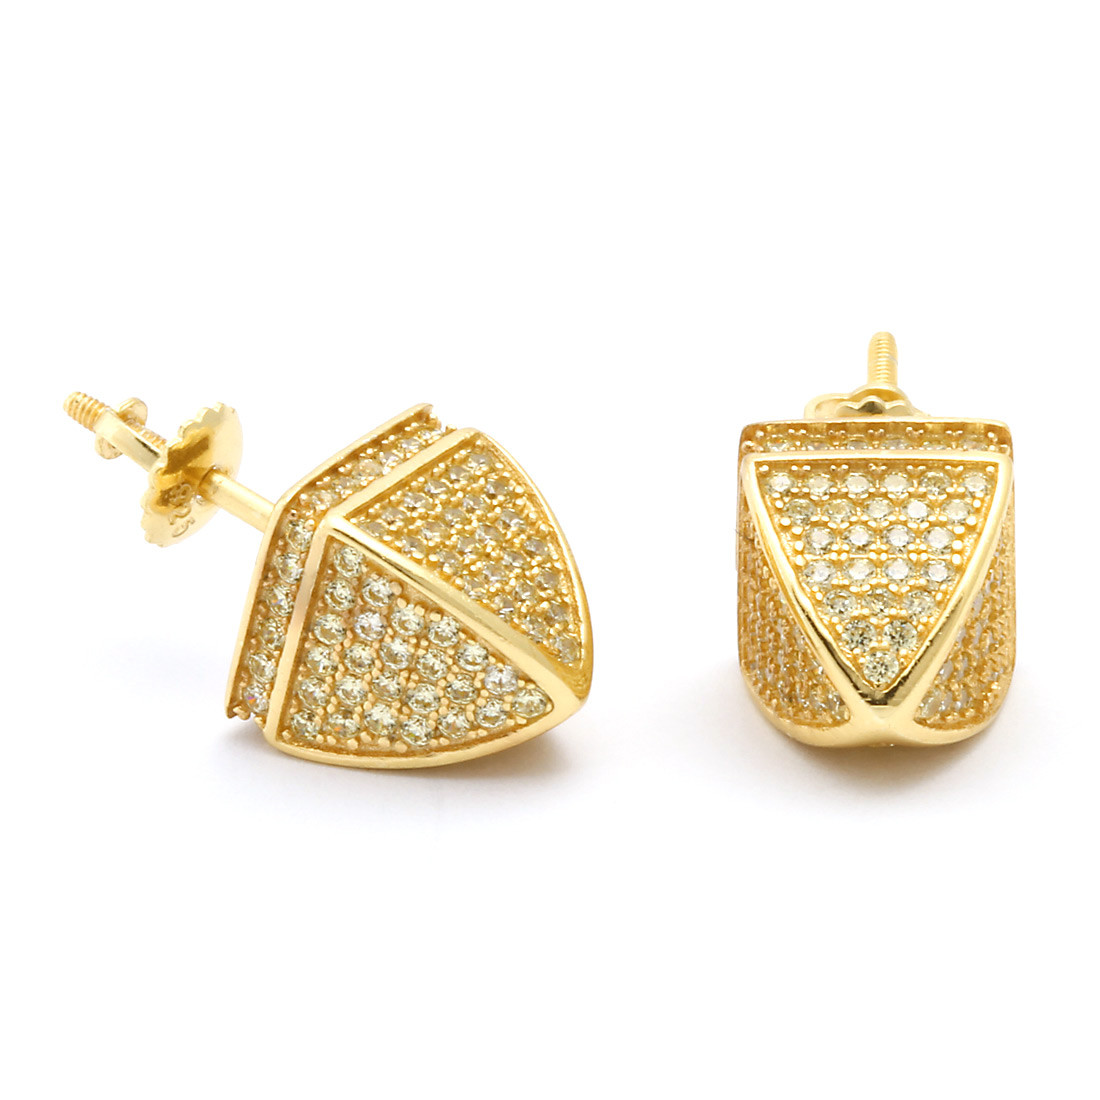 King Ice 14K Gold Dome Hip Hop Earrings King Ice powered by Hingeto